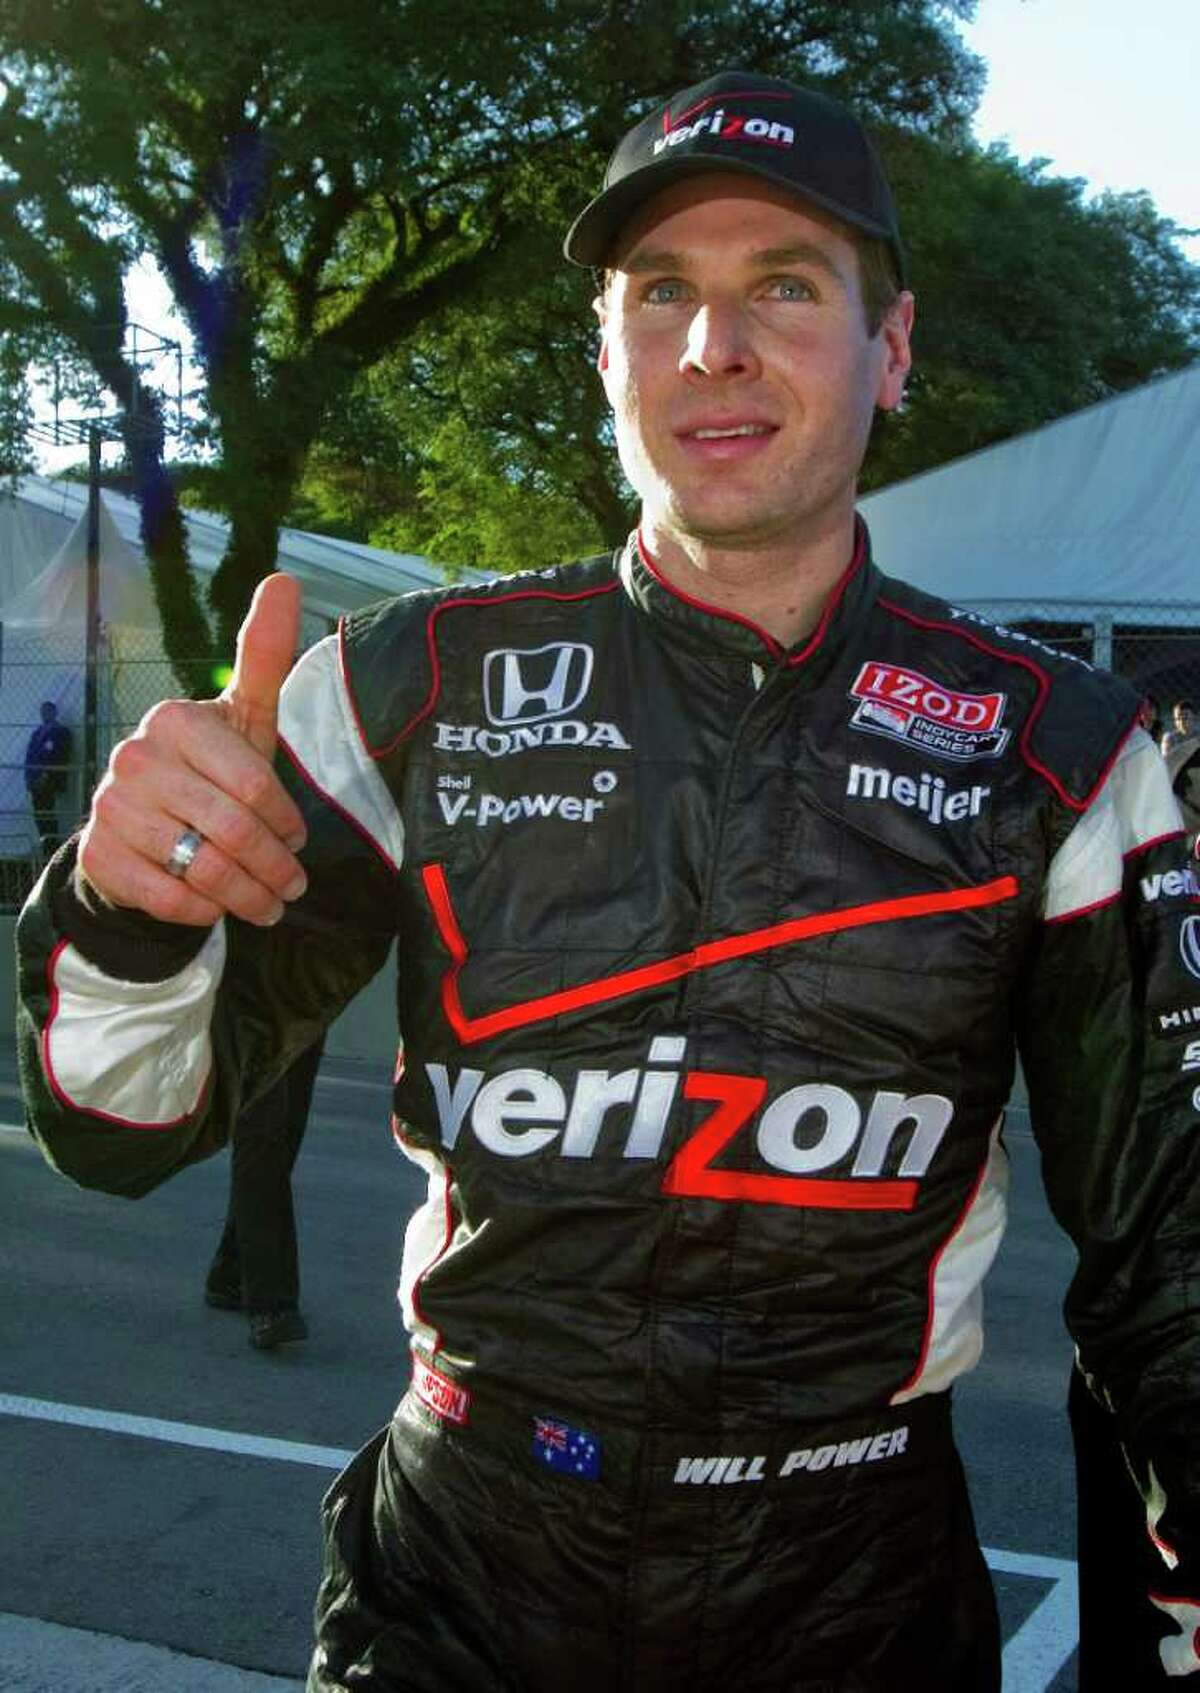 IndyCar driver Will Power, of Australia, gestures to fans after winning the pole position for the Brazilian Grand Prix, in Sao Paulo, Brazil, Saturday, April 30, 2011. Brazil will host the 4th race of the IndyCar season on May 1. (AP Photo/Andre Penner)